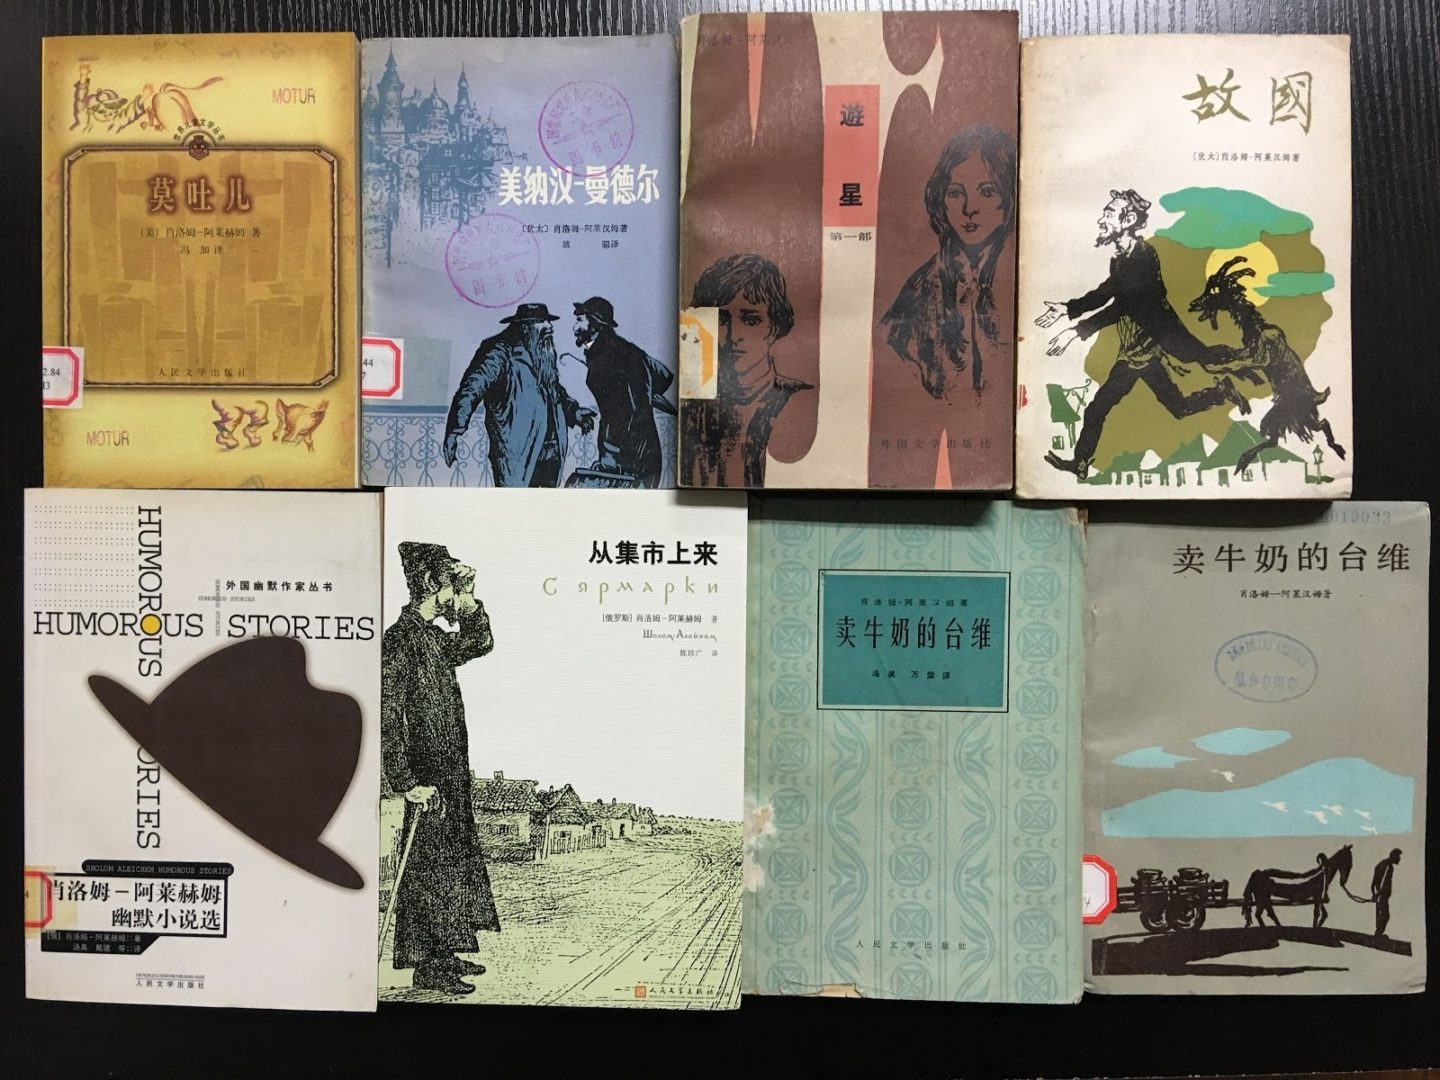 <p>A Collection of Sholem Aleichem's Chinese translations. The titles of the books above from left to right are: <em>Motl</em>, <em>Menakhem-Mendl</em>, <em>Wandering Stars</em> and <em>The Old Country, </em>and the titles below from left to right are: <em>Humorous Stories of Sholem Aleichem, From the Fair, Tevye the Dairyman </em>and<em> Tevye the Dairyman</em>, courtesy of Song&nbsp;Lihong</p>